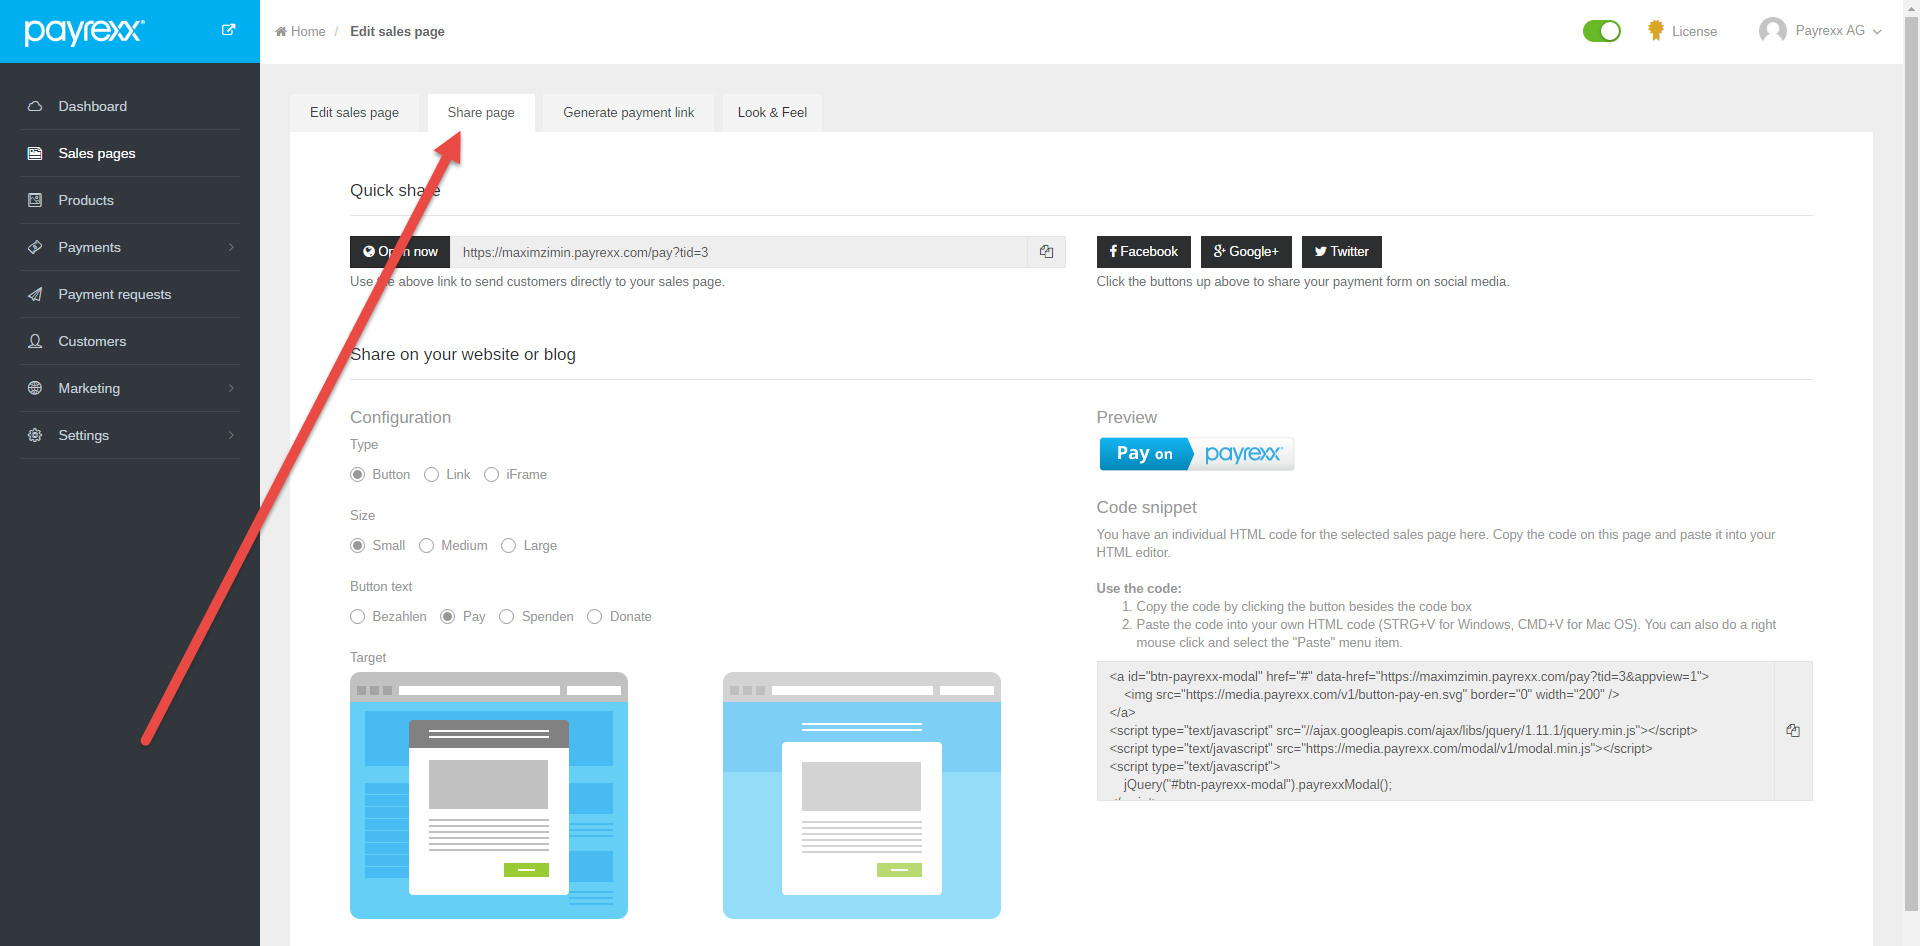 Payrexx integration in Weebly : Customer Support